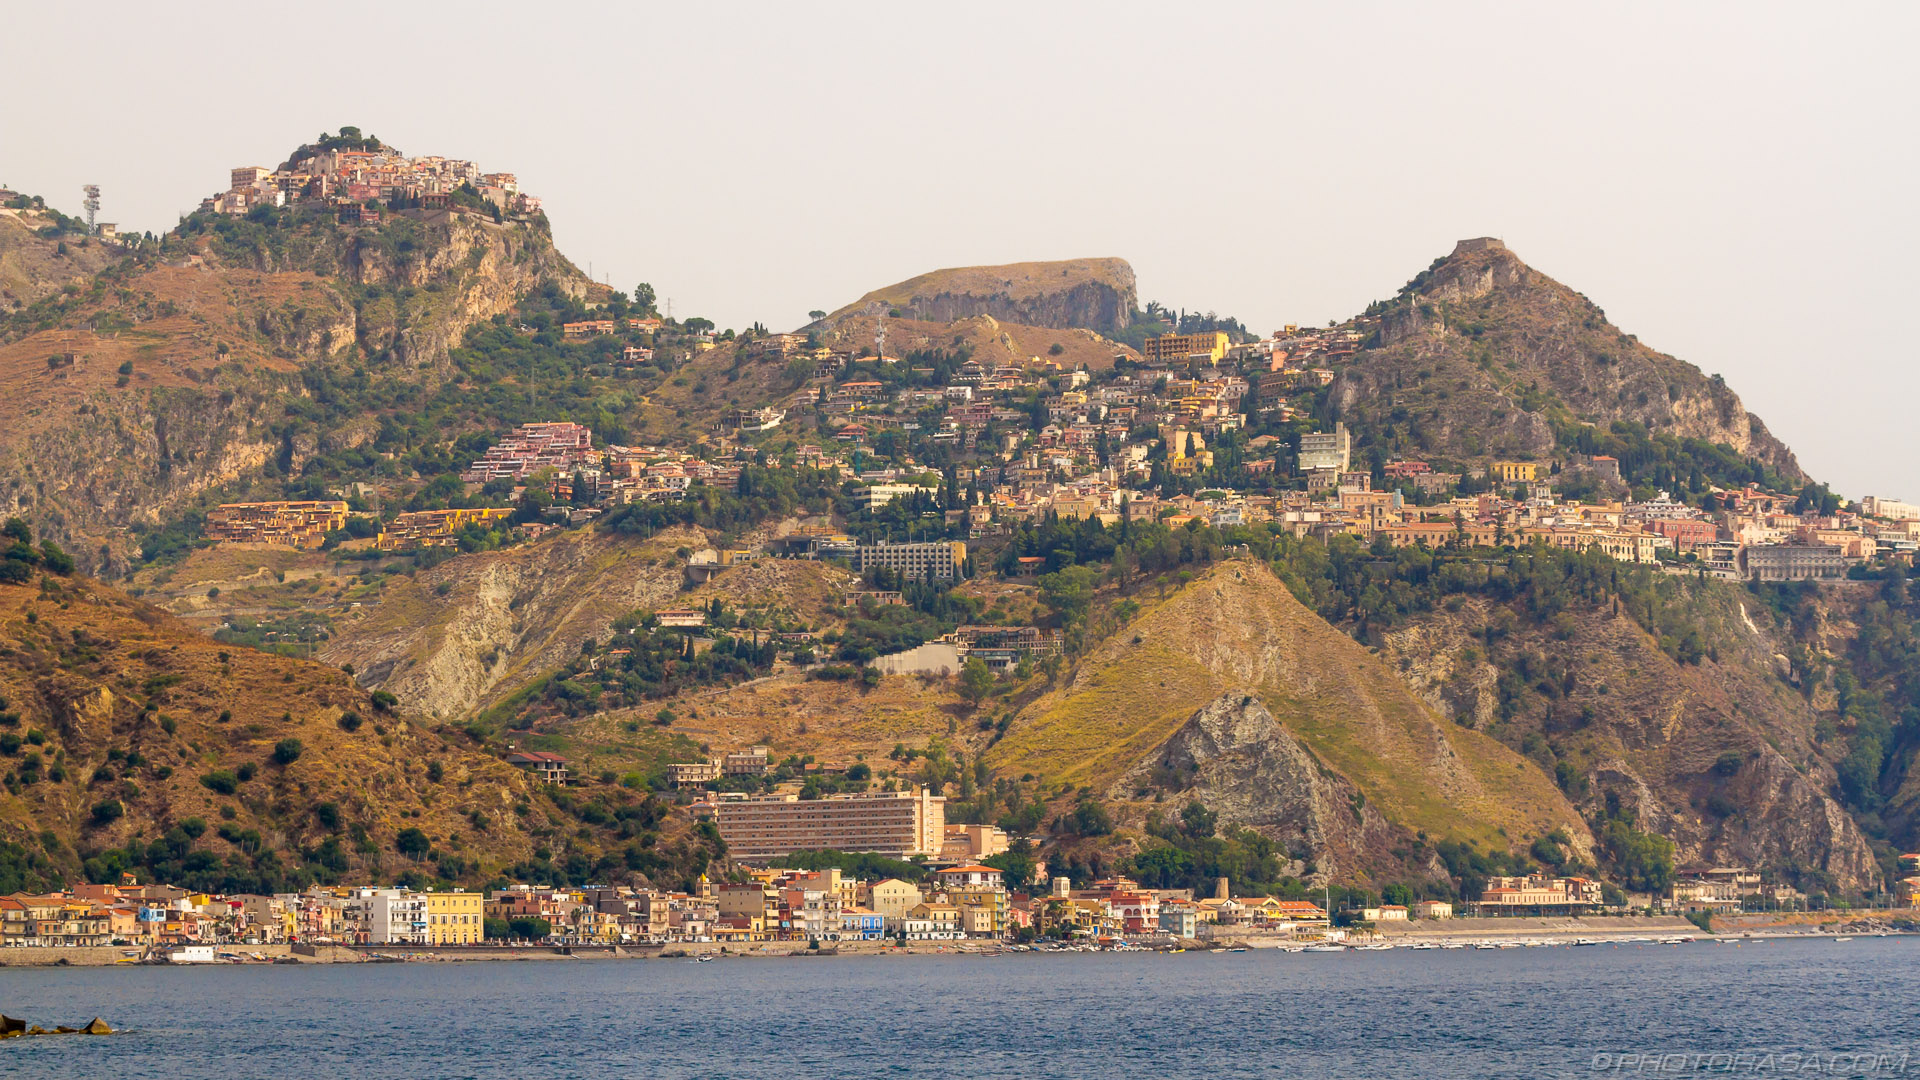 http://photorasa.com/places/giardini-naxos/attachment/east-sicily-coast-line-at-giardini-naxos/